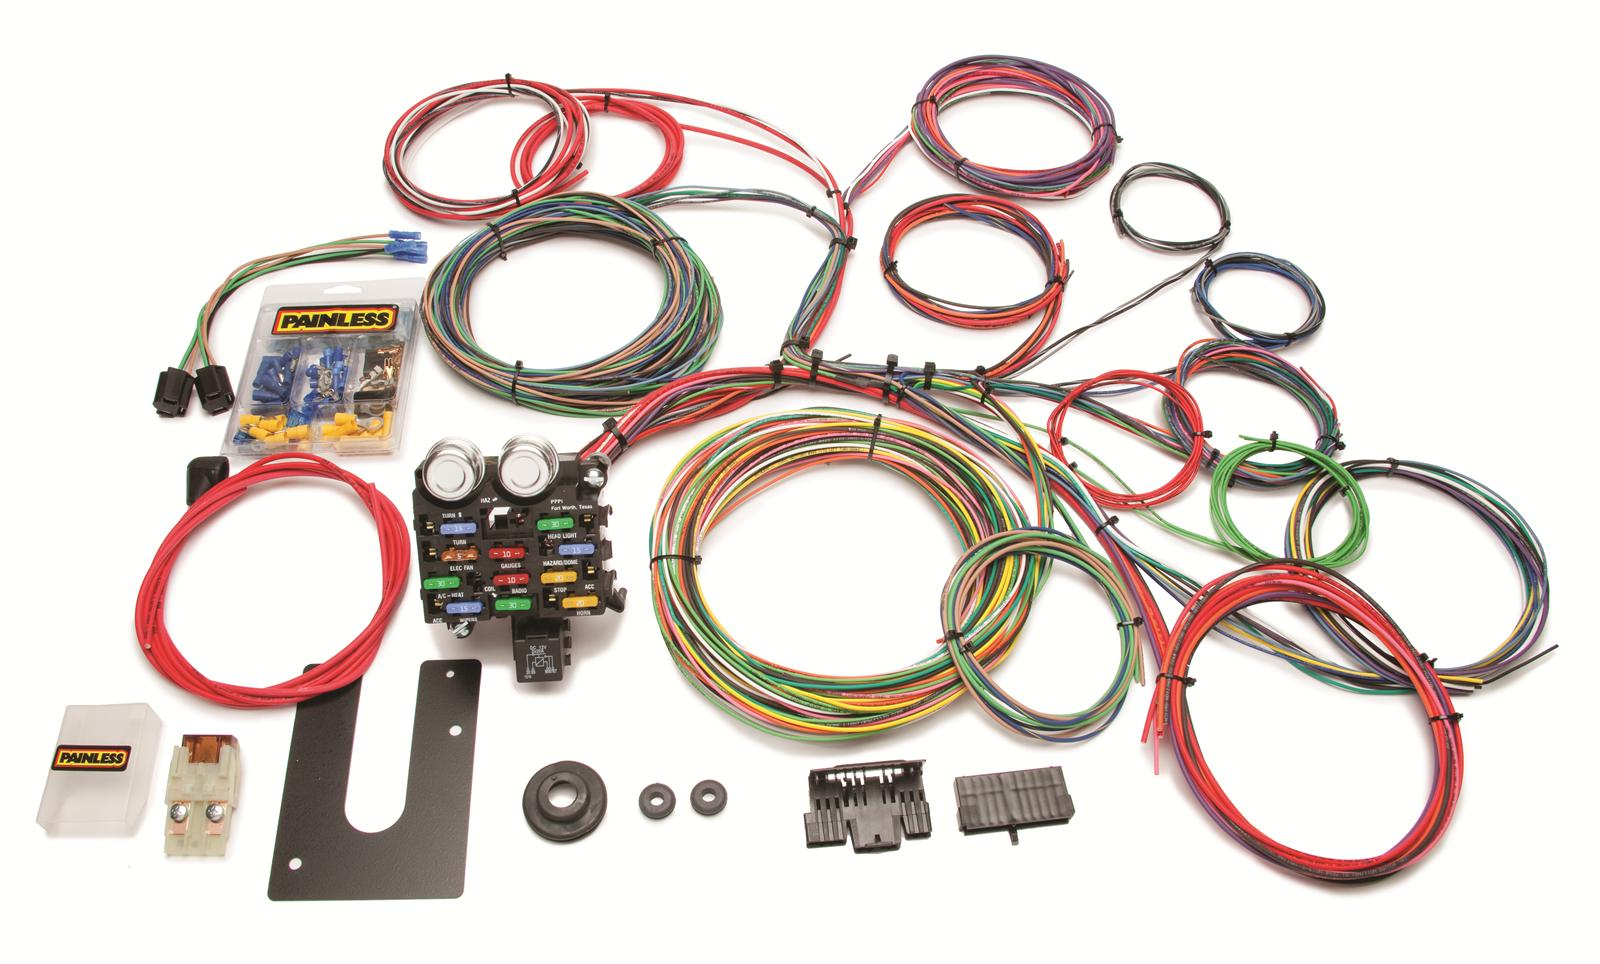 prf 10102_xl painless performance 21 circuit universal harnesses 10102 free universal wiring harness australia at bakdesigns.co